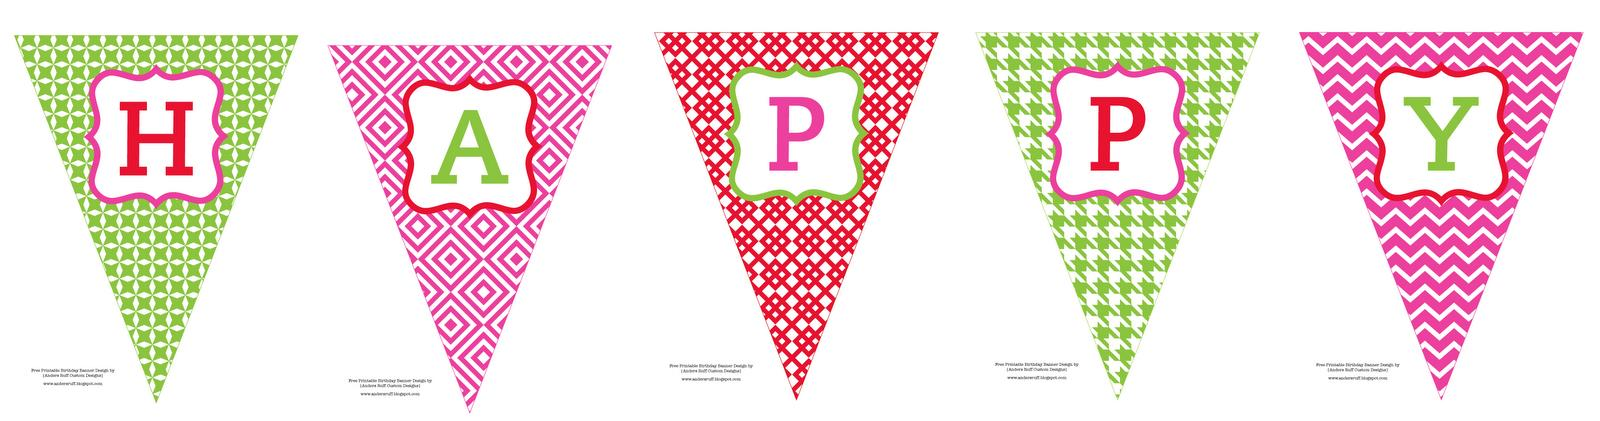 birthday photo banner template ; happy-birthday-flag-banner-template-free-printable-happy-birthday-banner-anders-ruff-custom-designs